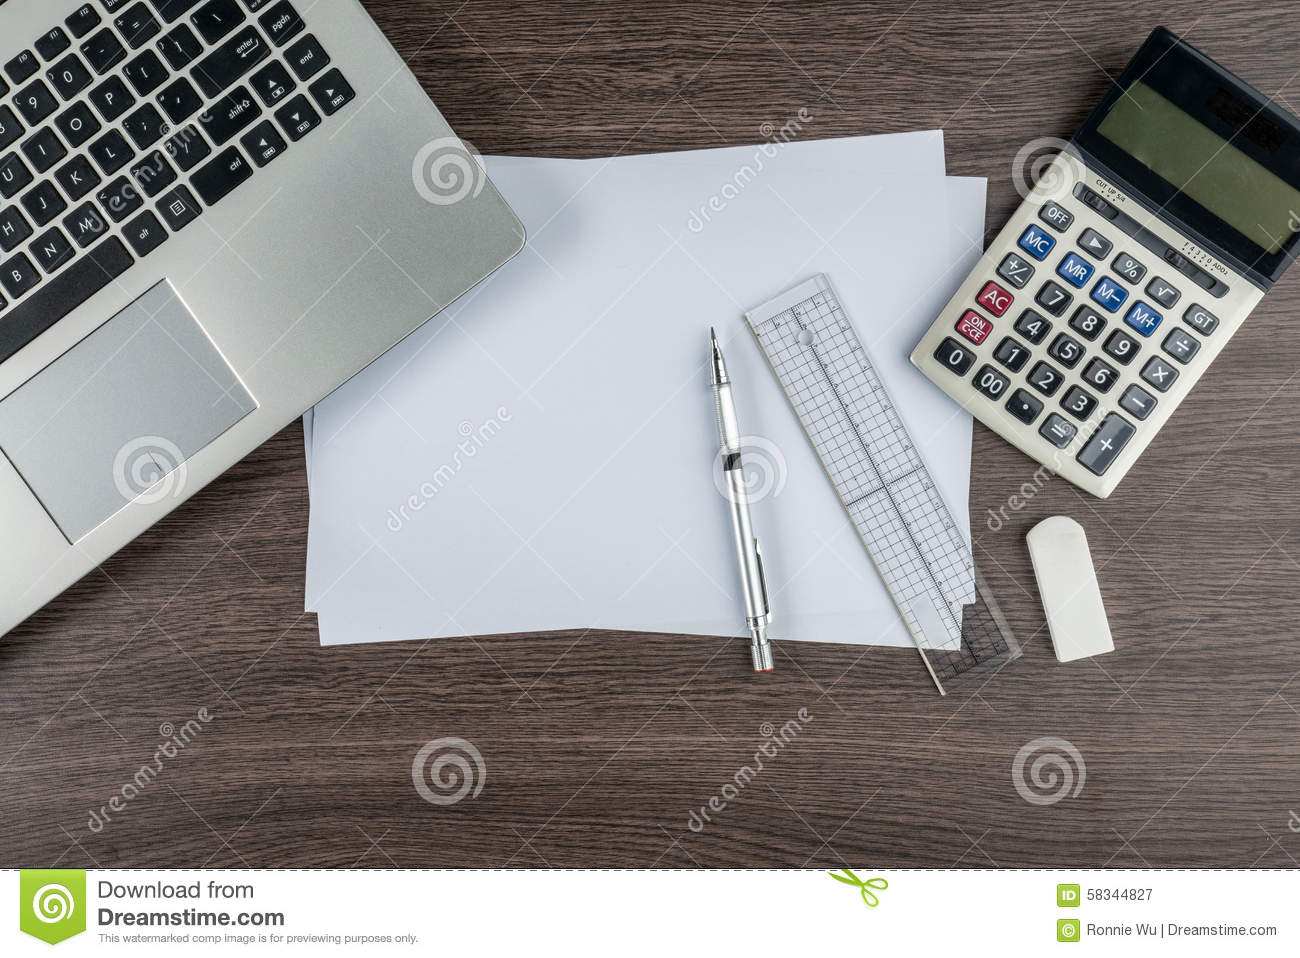 how to write 2.7 million on calculator